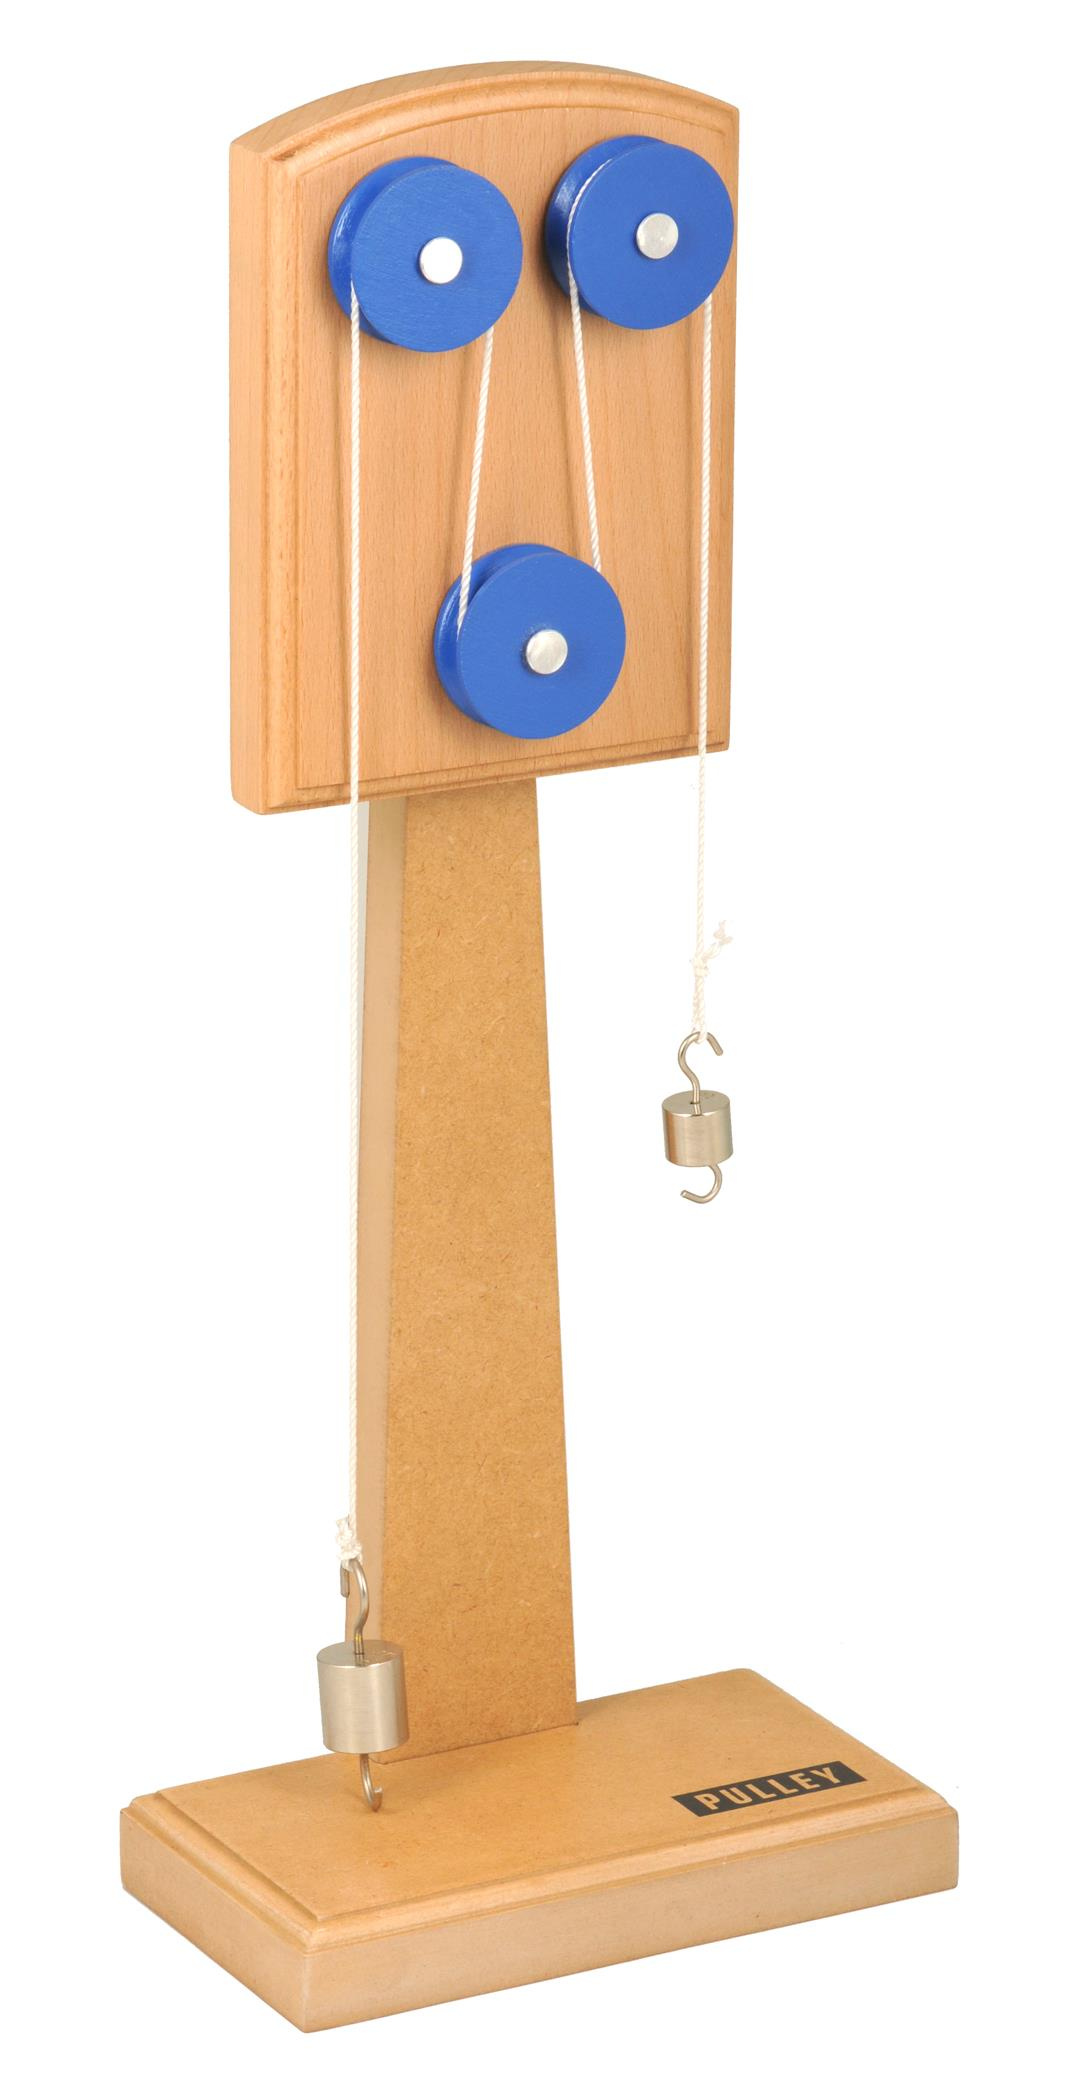 Simple Pulley Model